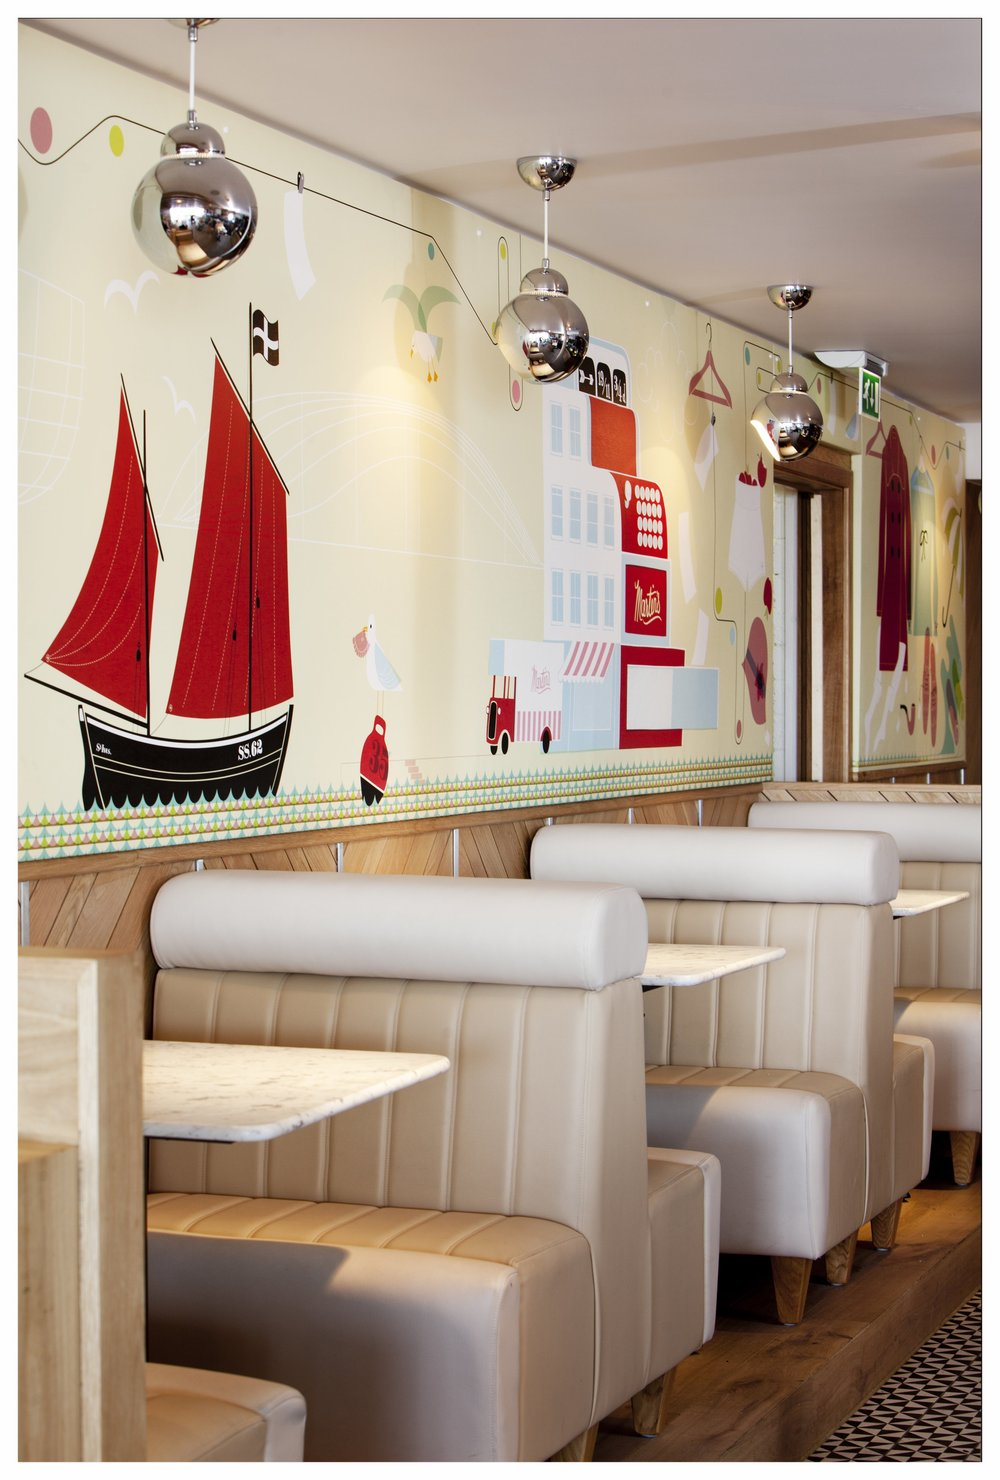 JR20110426_PizzaExpress-1.jpg